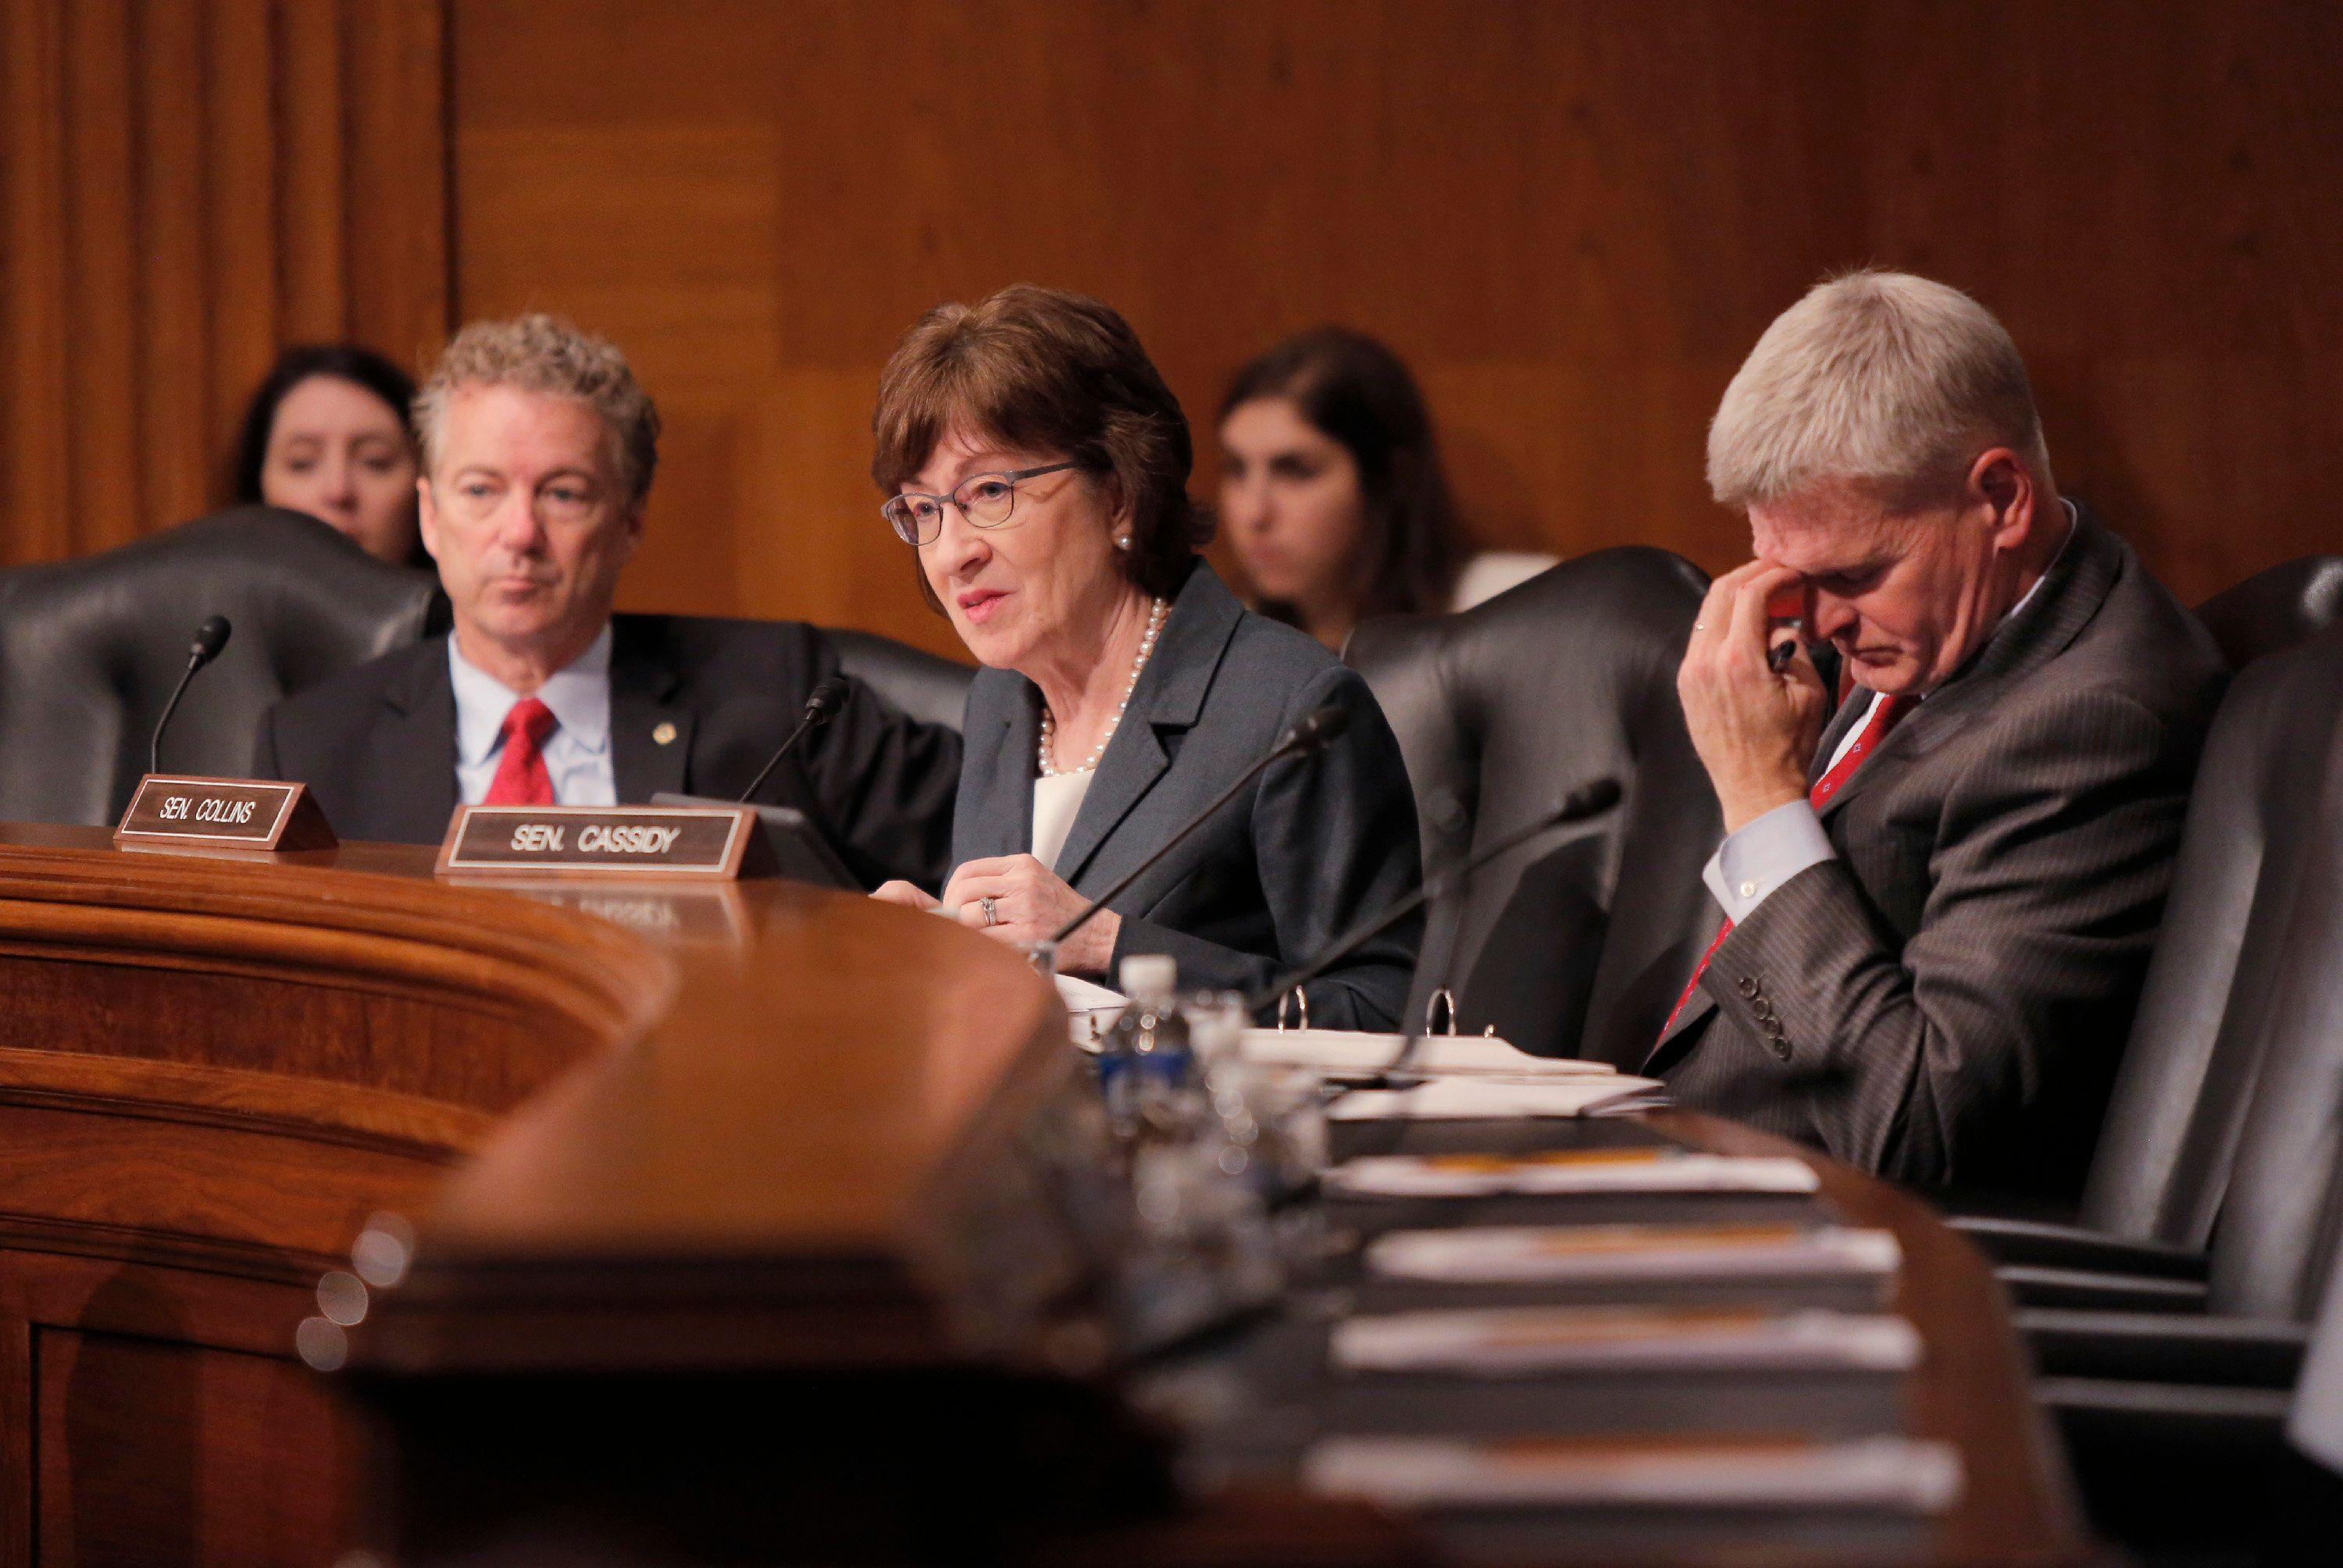 WASHINGTON, D.C. - DECEMBER 12: Flanked by Sen. Rand Paul (R-KY), left and Sen. Bill Cassidy (R-LA), Sen. Susan Collins asks questions of a panel during a hearing of the Health, Education, Labor and Pensions Committee on Capitol Hill in Washington, D.C. on Tuesday, December 12, 2017. (Staff Photo by Gregory Rec/Portland Press Herald via Getty Images)